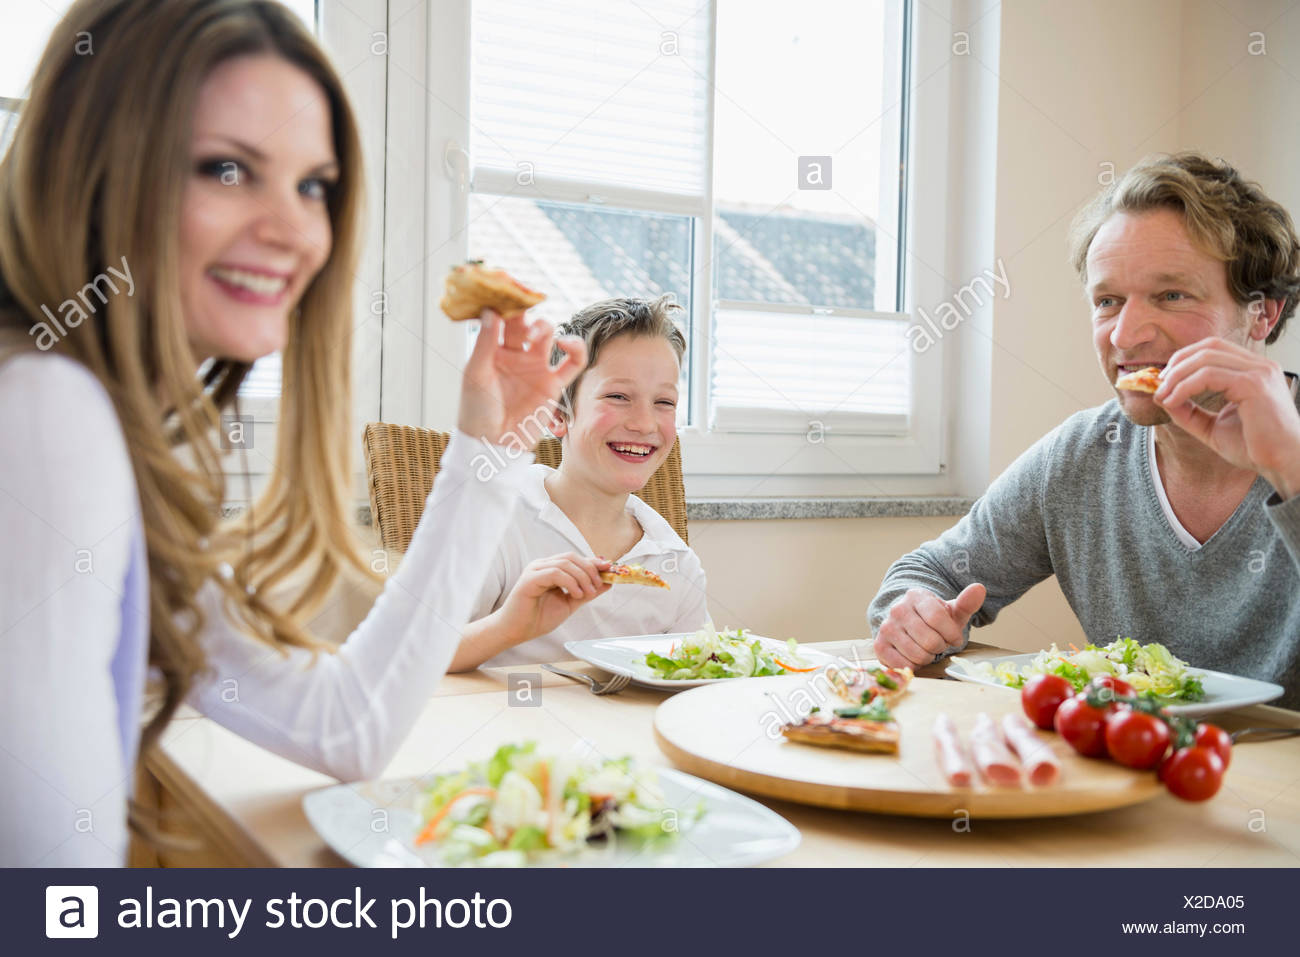 Family eating pizza and salad at home - Stock Image